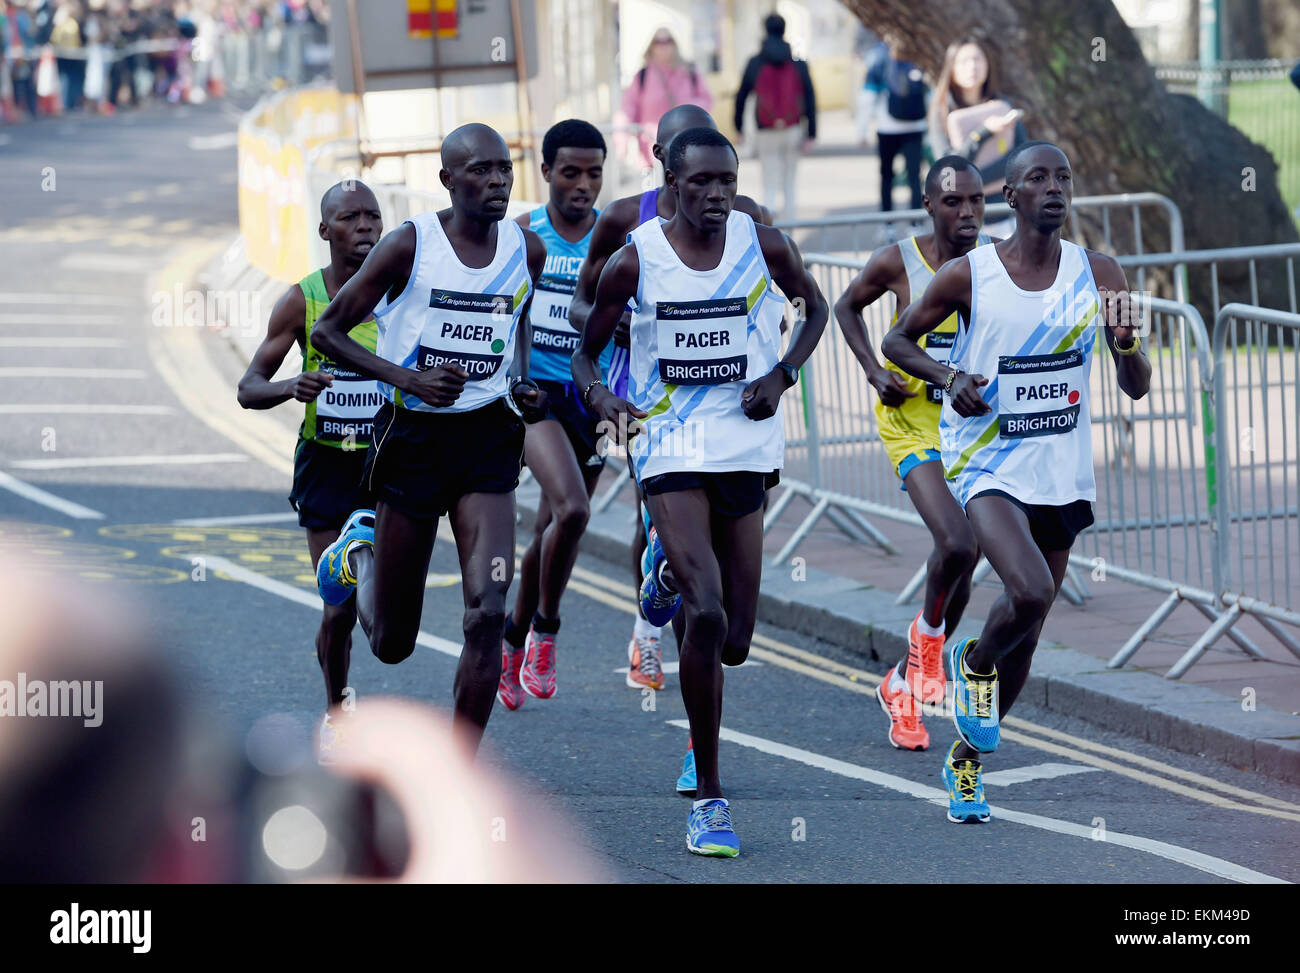 Brighton, UK. 12th April, 2015. Early pace setters in the mens race in the Brighton Marathon today  Credit:  Simon - Stock Image